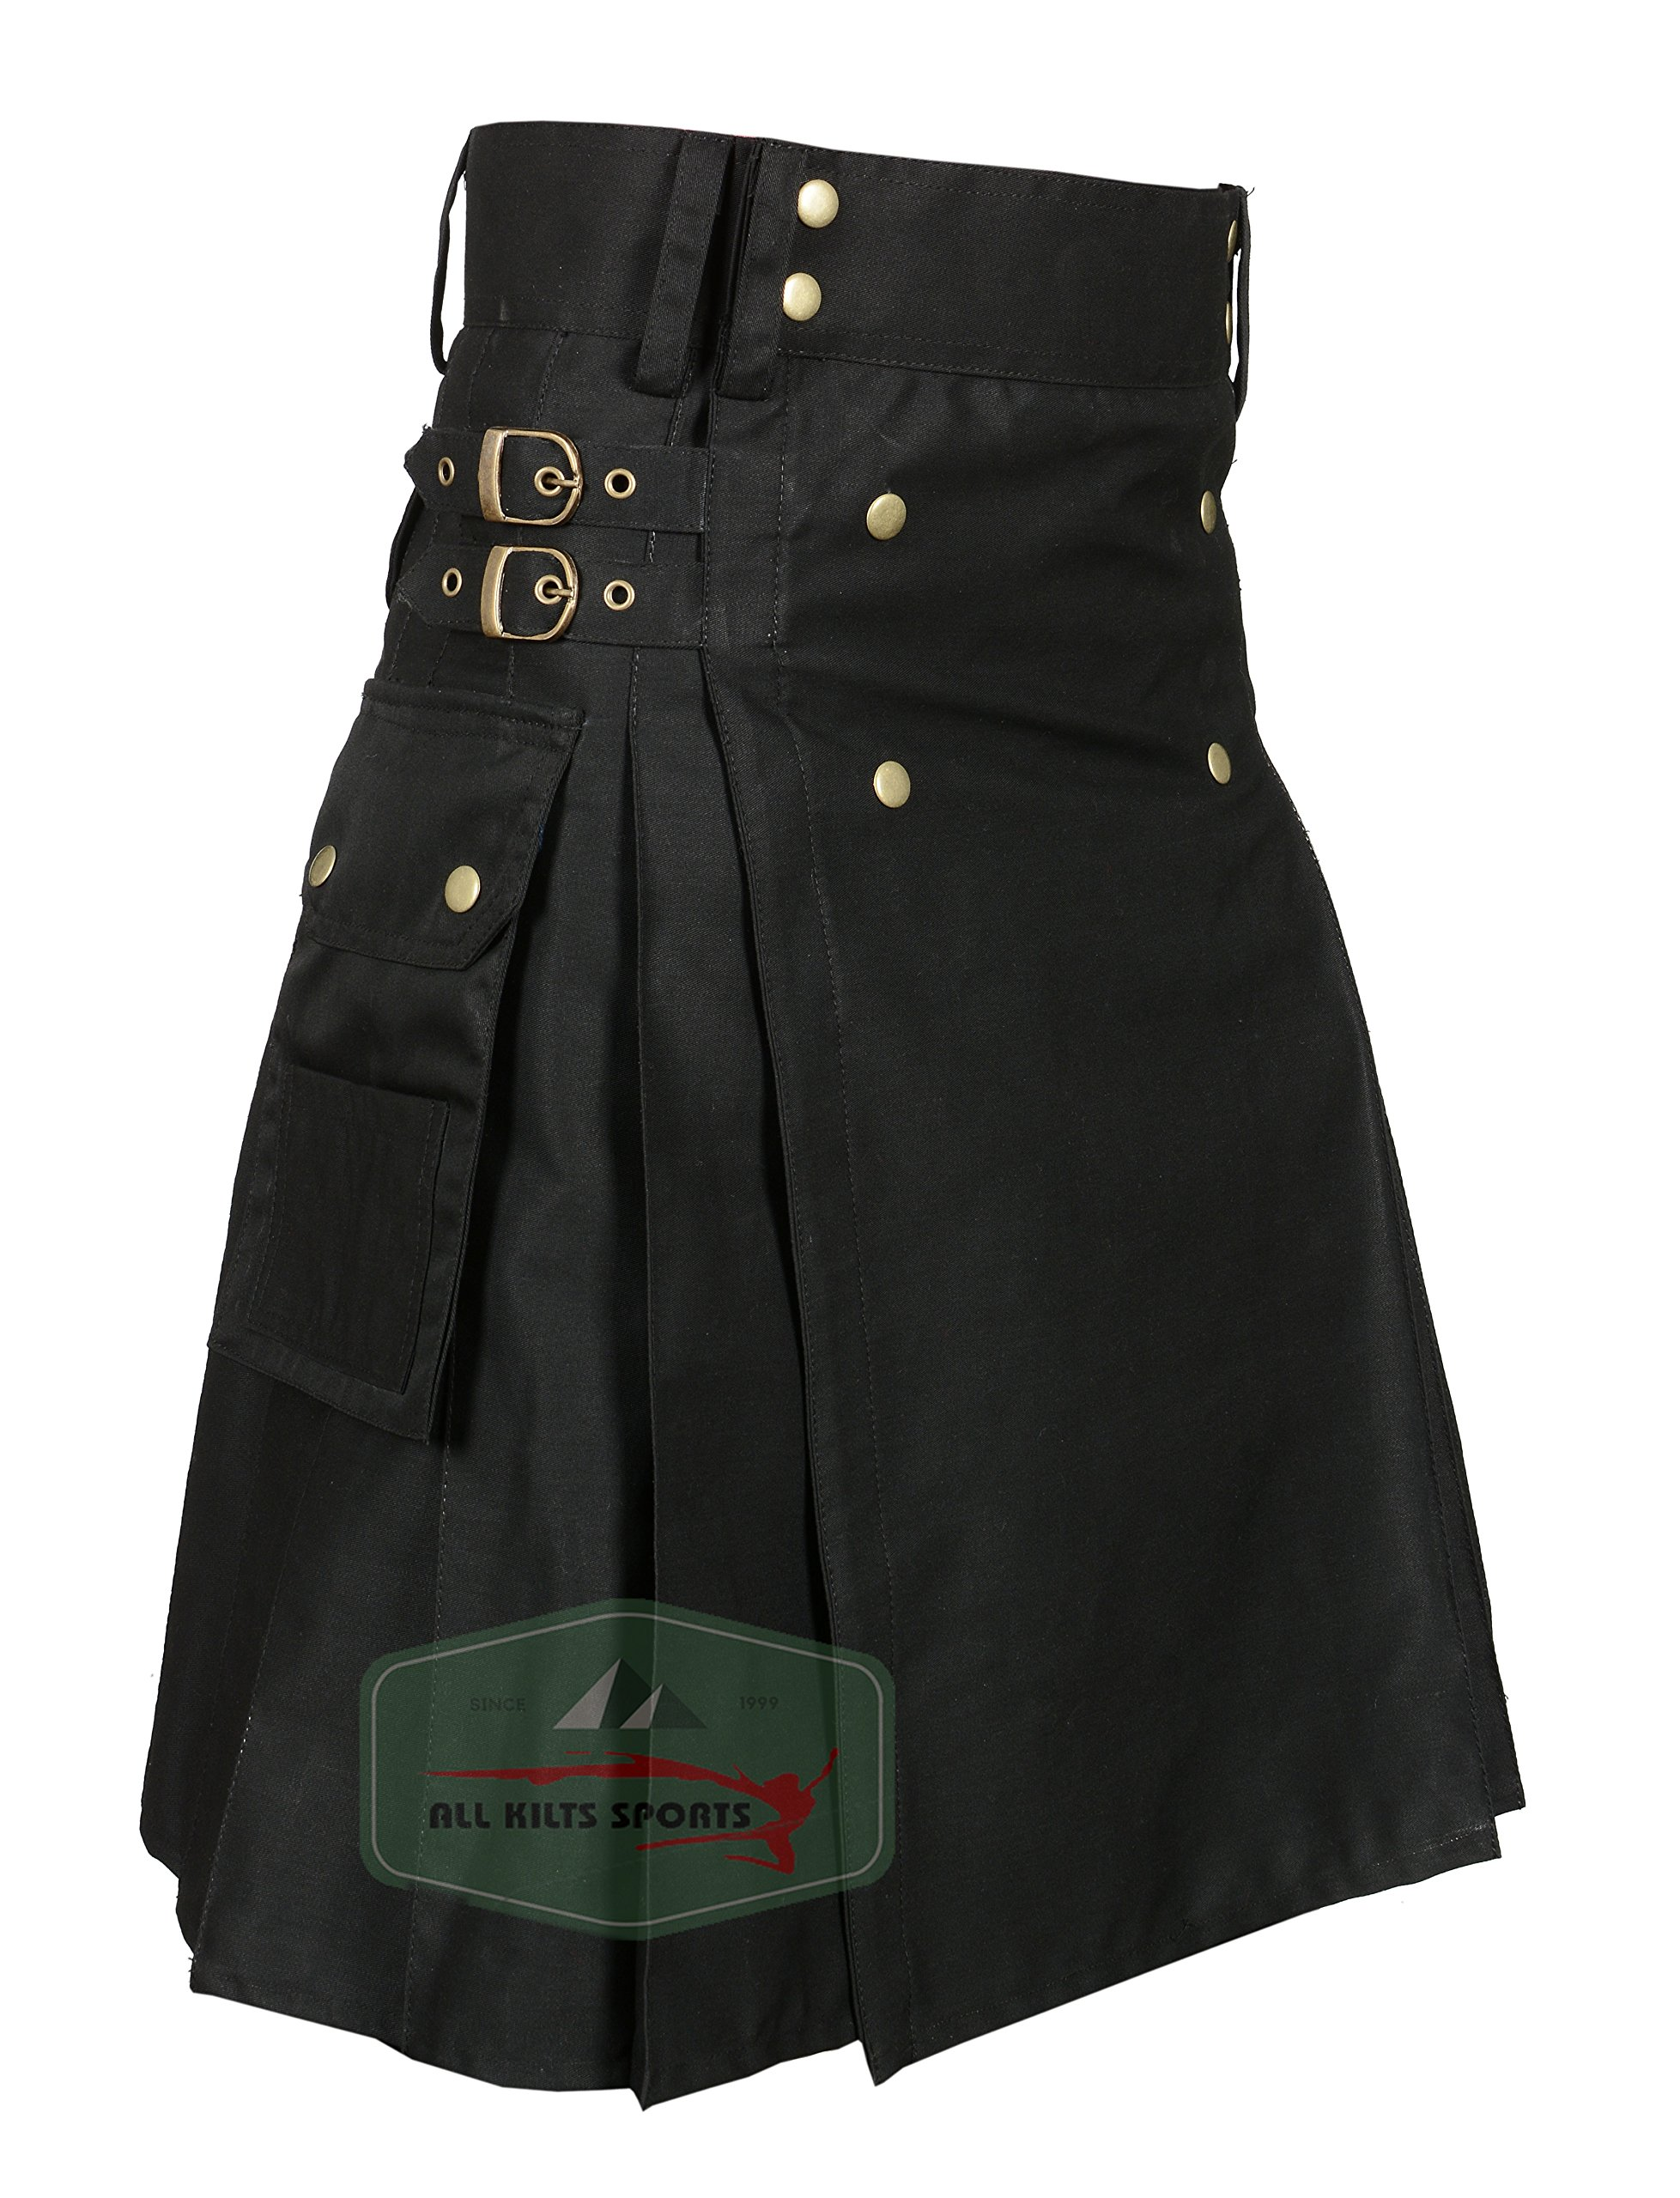 Men's Stylish Black Wedding Utility Kilt - Utility Kilts (40)